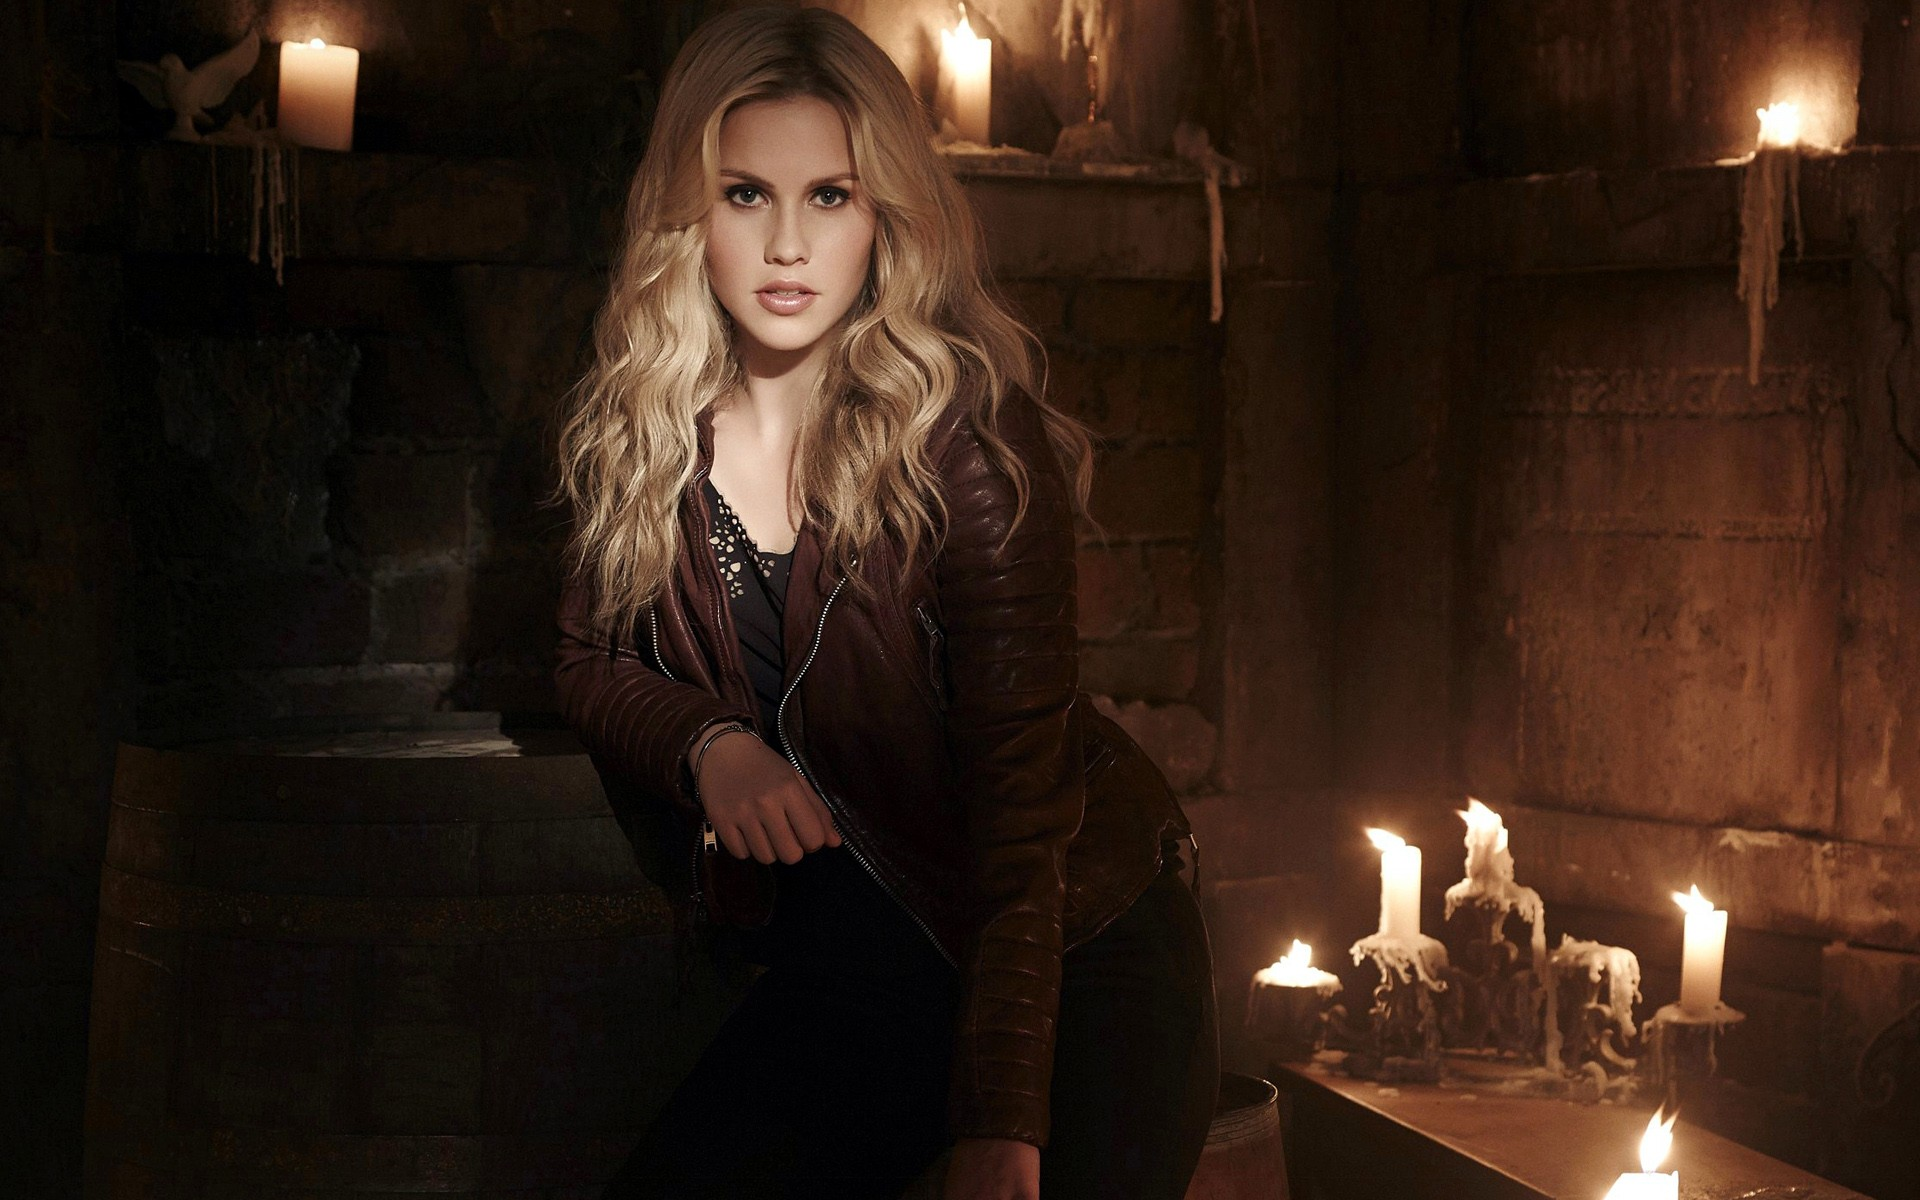 3d Wallpaper Vampire Diaries Claire Holt Hd Celebrities 4k Wallpapers Images